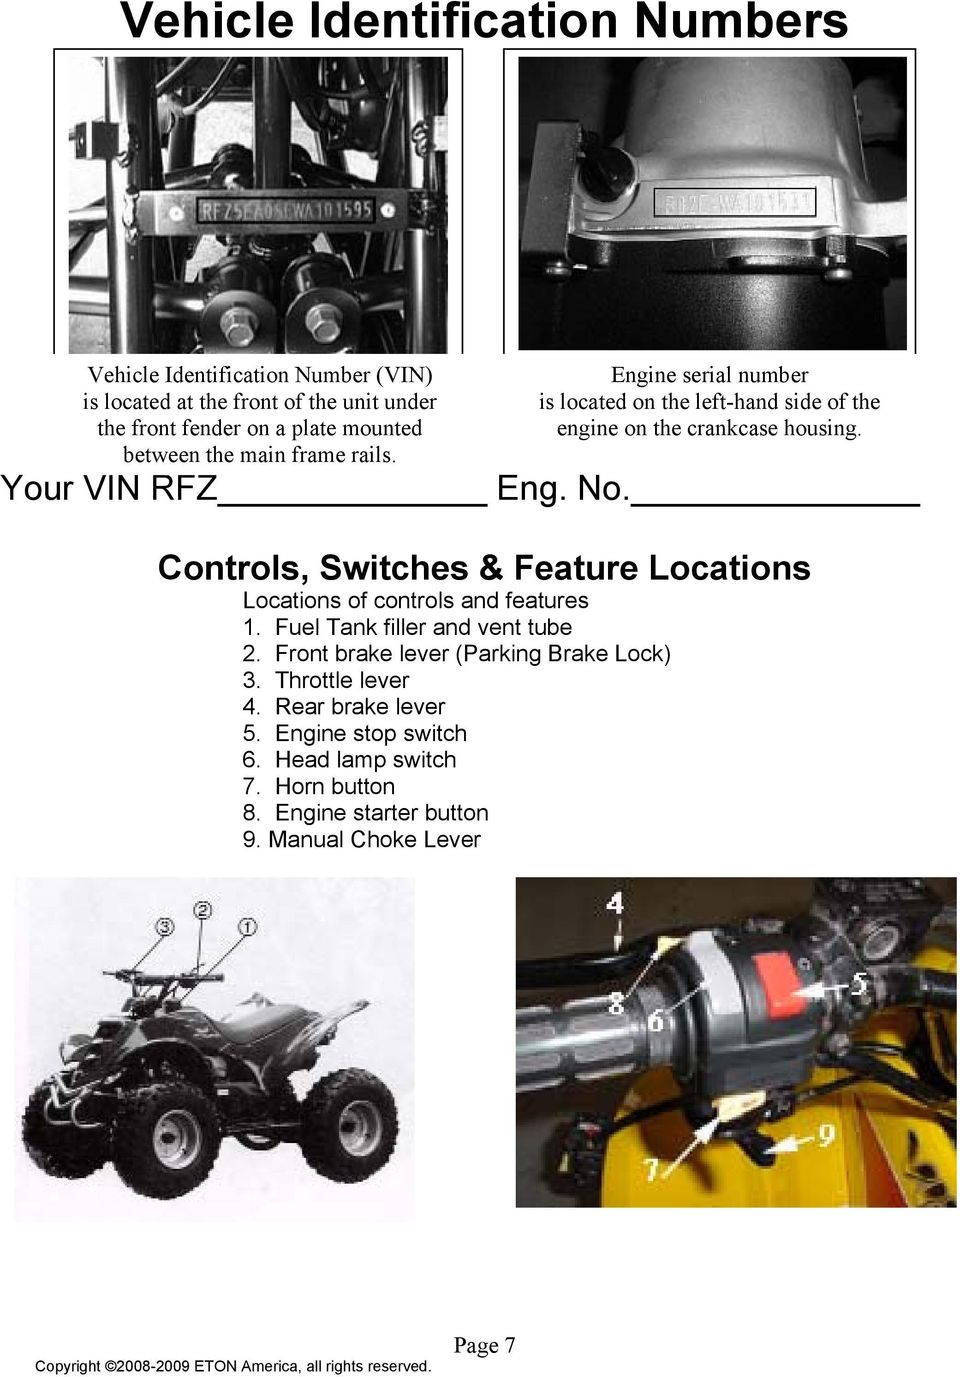 Controls, Switches & Feature Locations Locations of controls and features  1. Fuel Tank filler